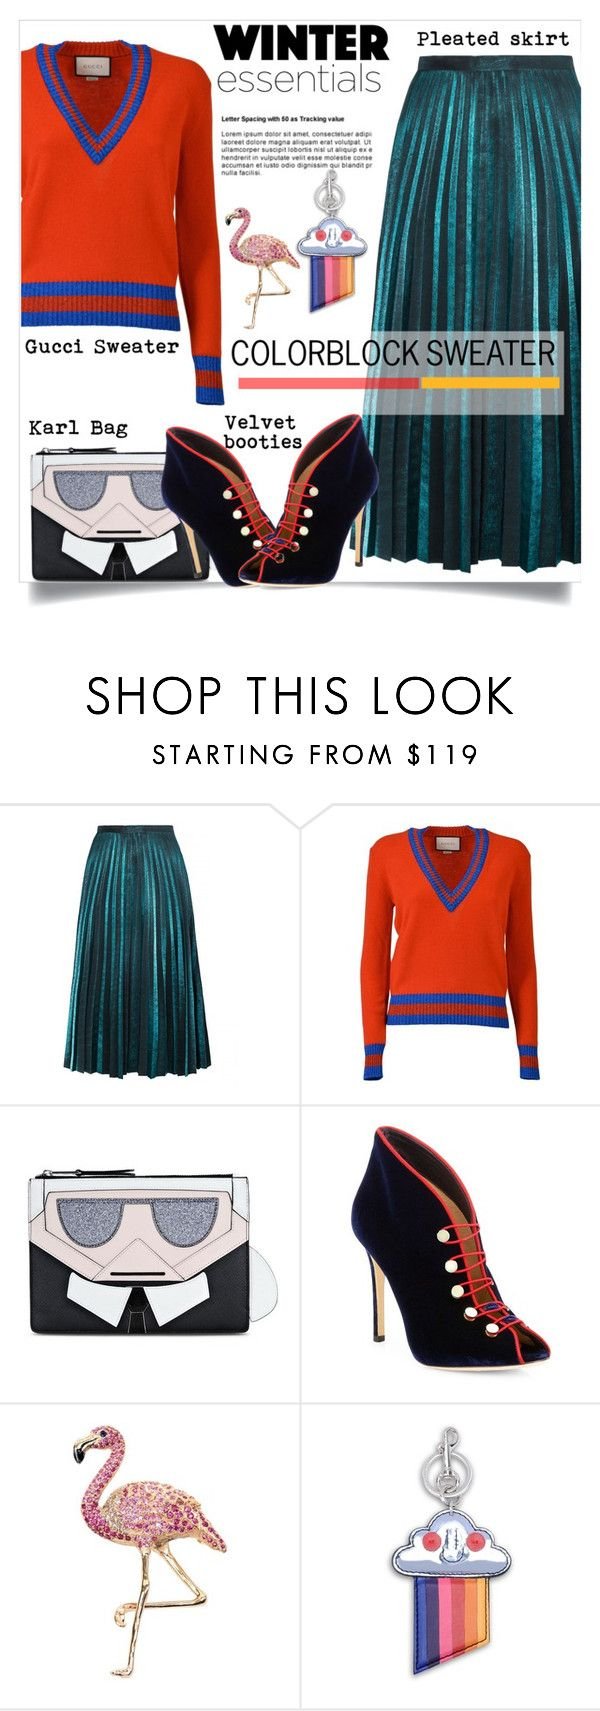 """""""Color block Sweater"""" by theglossyspace ❤ liked on Polyvore featuring Gucci, Karl Lagerfeld, Gianvito Rossi and STELLA McCARTNEY"""